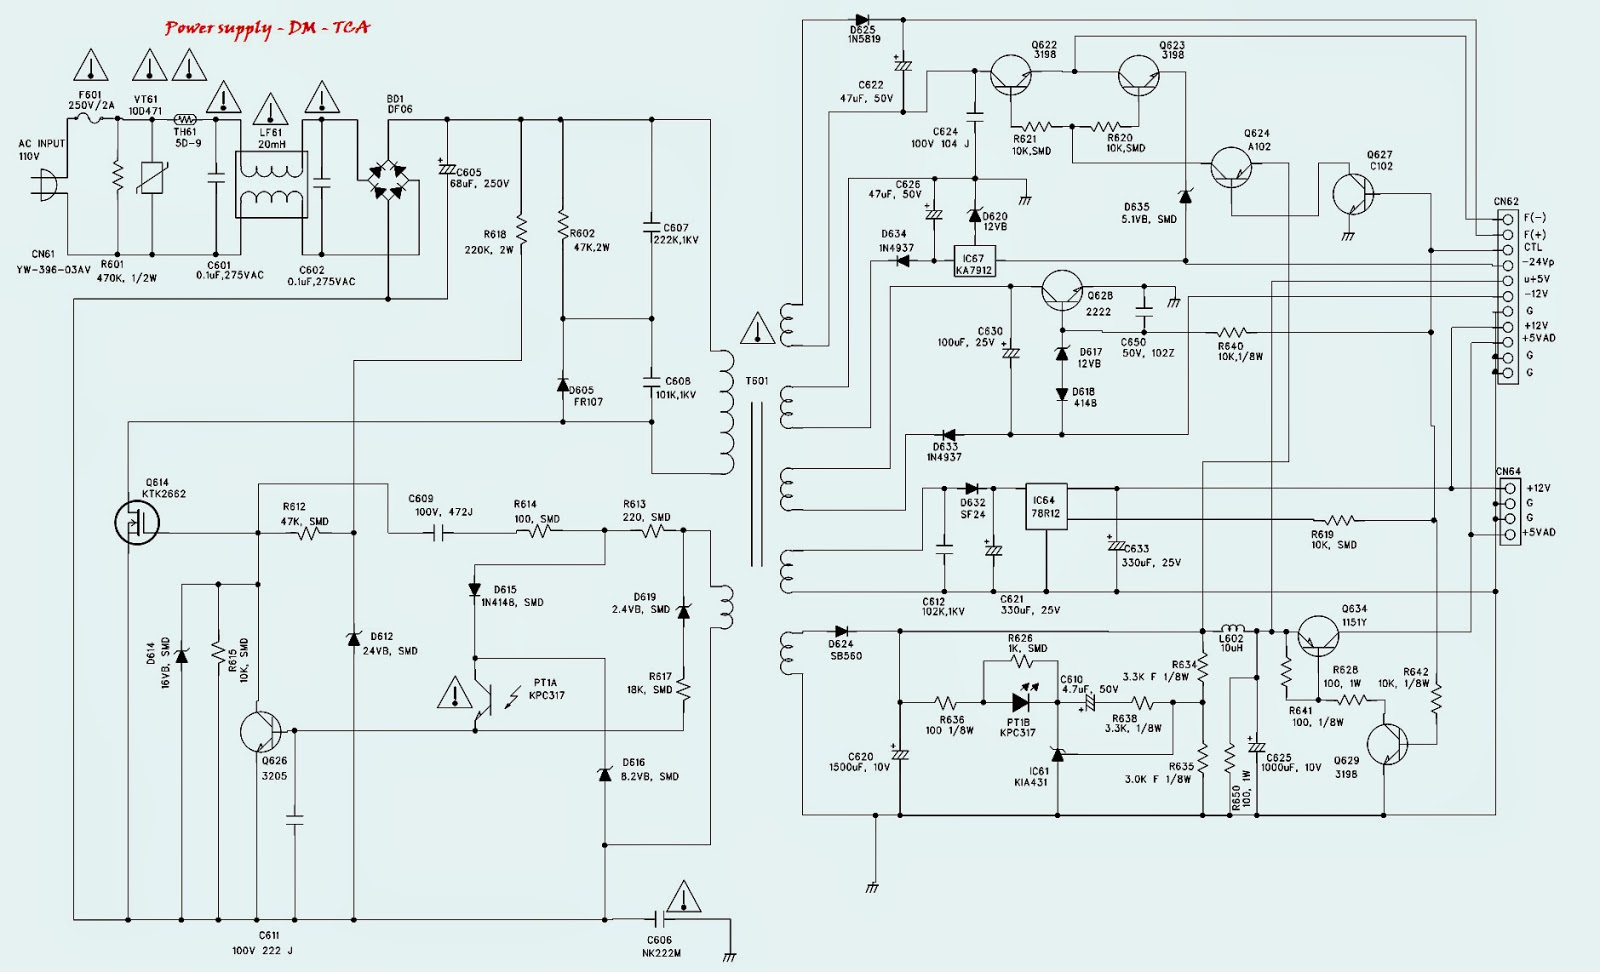 [DIAGRAM] Daewoo Dv 135 Dvd Player Schematic Diagram